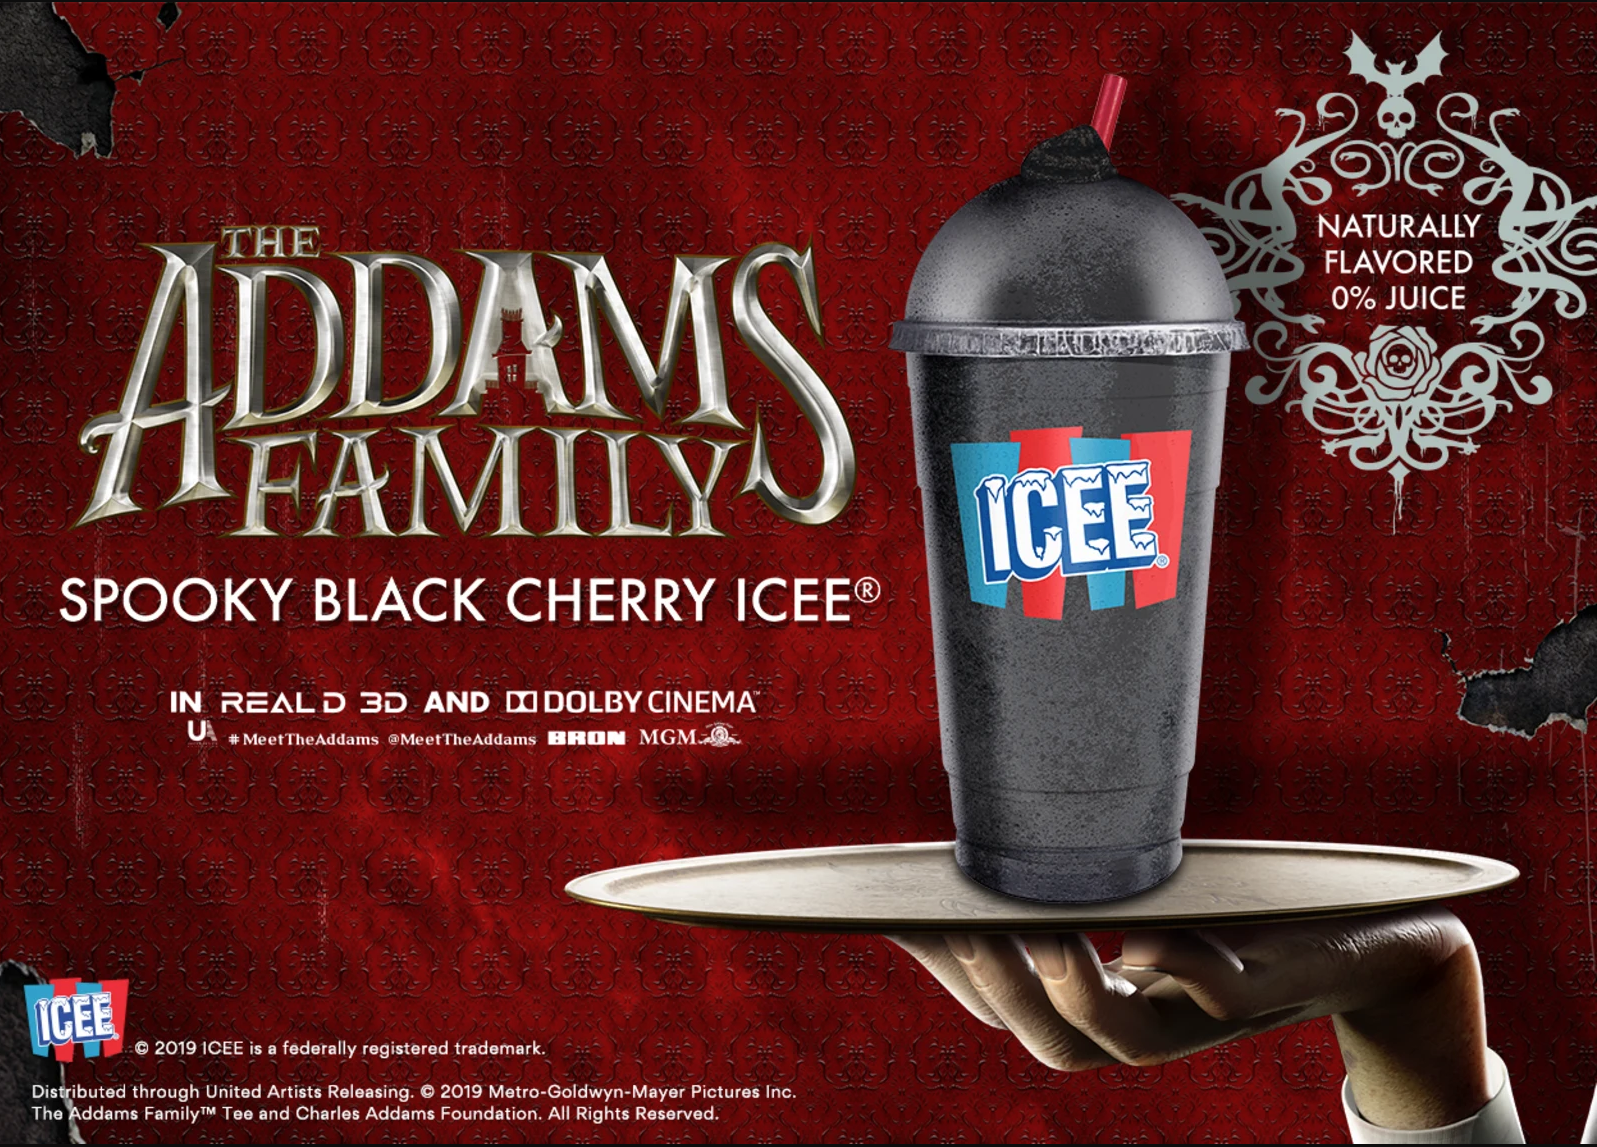 You Can Get A Jet Black Icee In Movie Theaters Now In Honor Of The Addams Family Movie